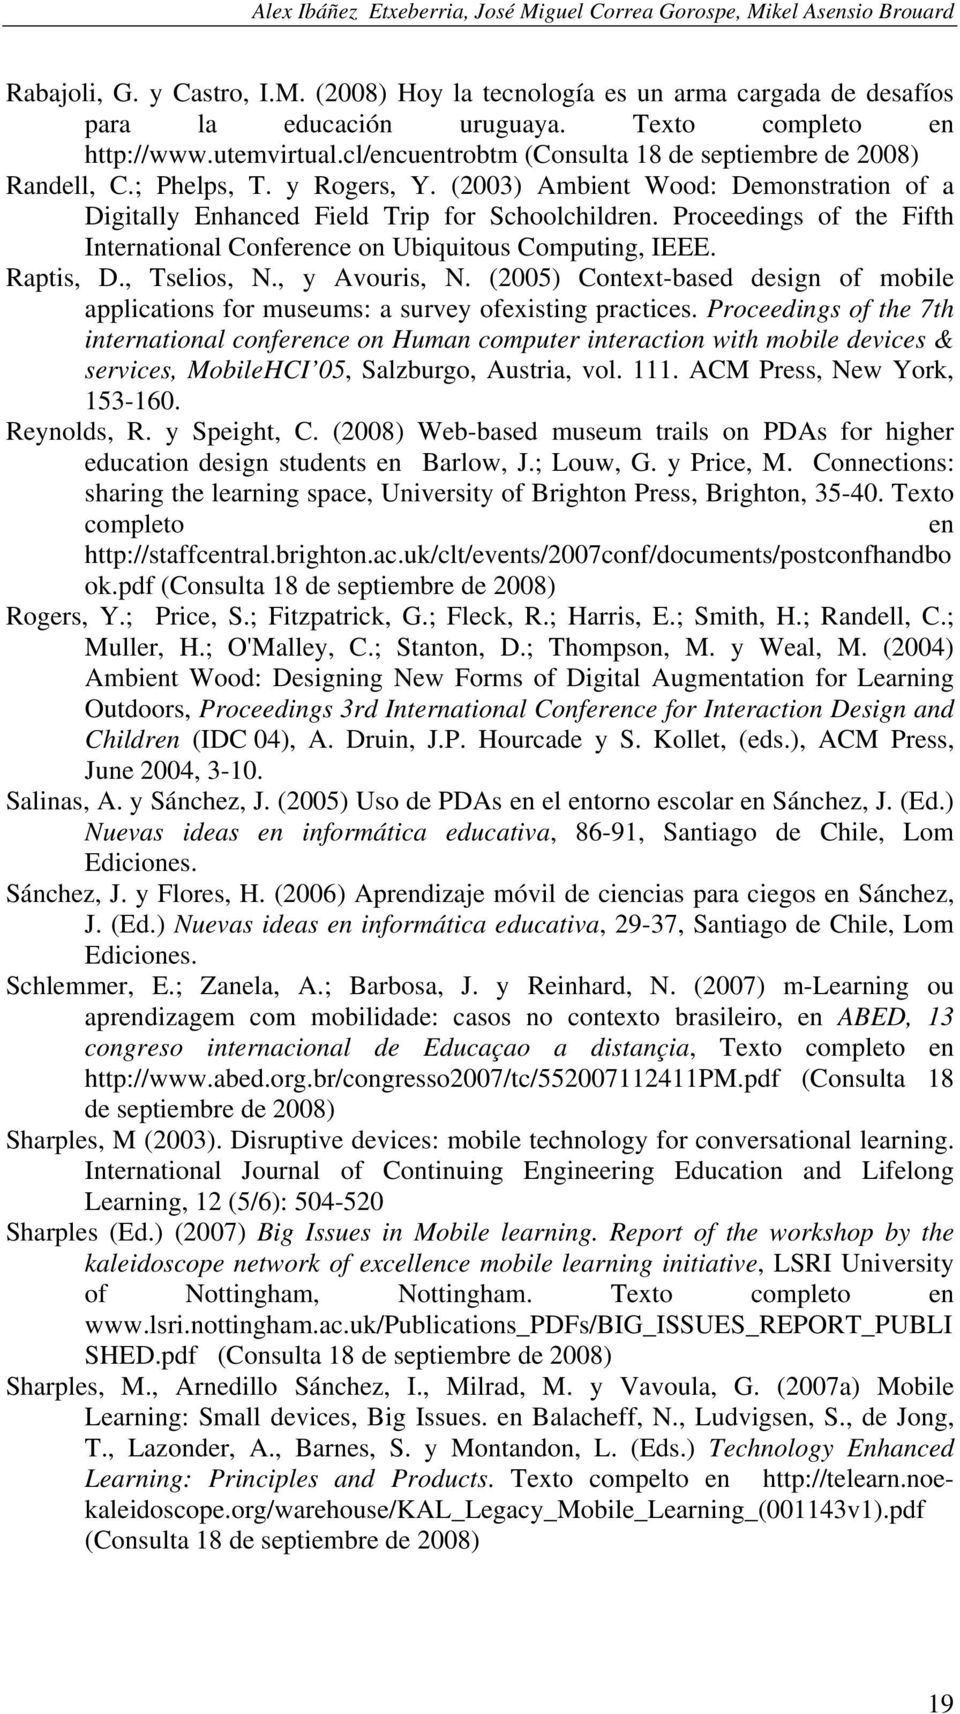 (2003) Ambient Wood: Demonstration of a Digitally Enhanced Field Trip for Schoolchildren. Proceedings of the Fifth International Conference on Ubiquitous Computing, IEEE. Raptis, D., Tselios, N.